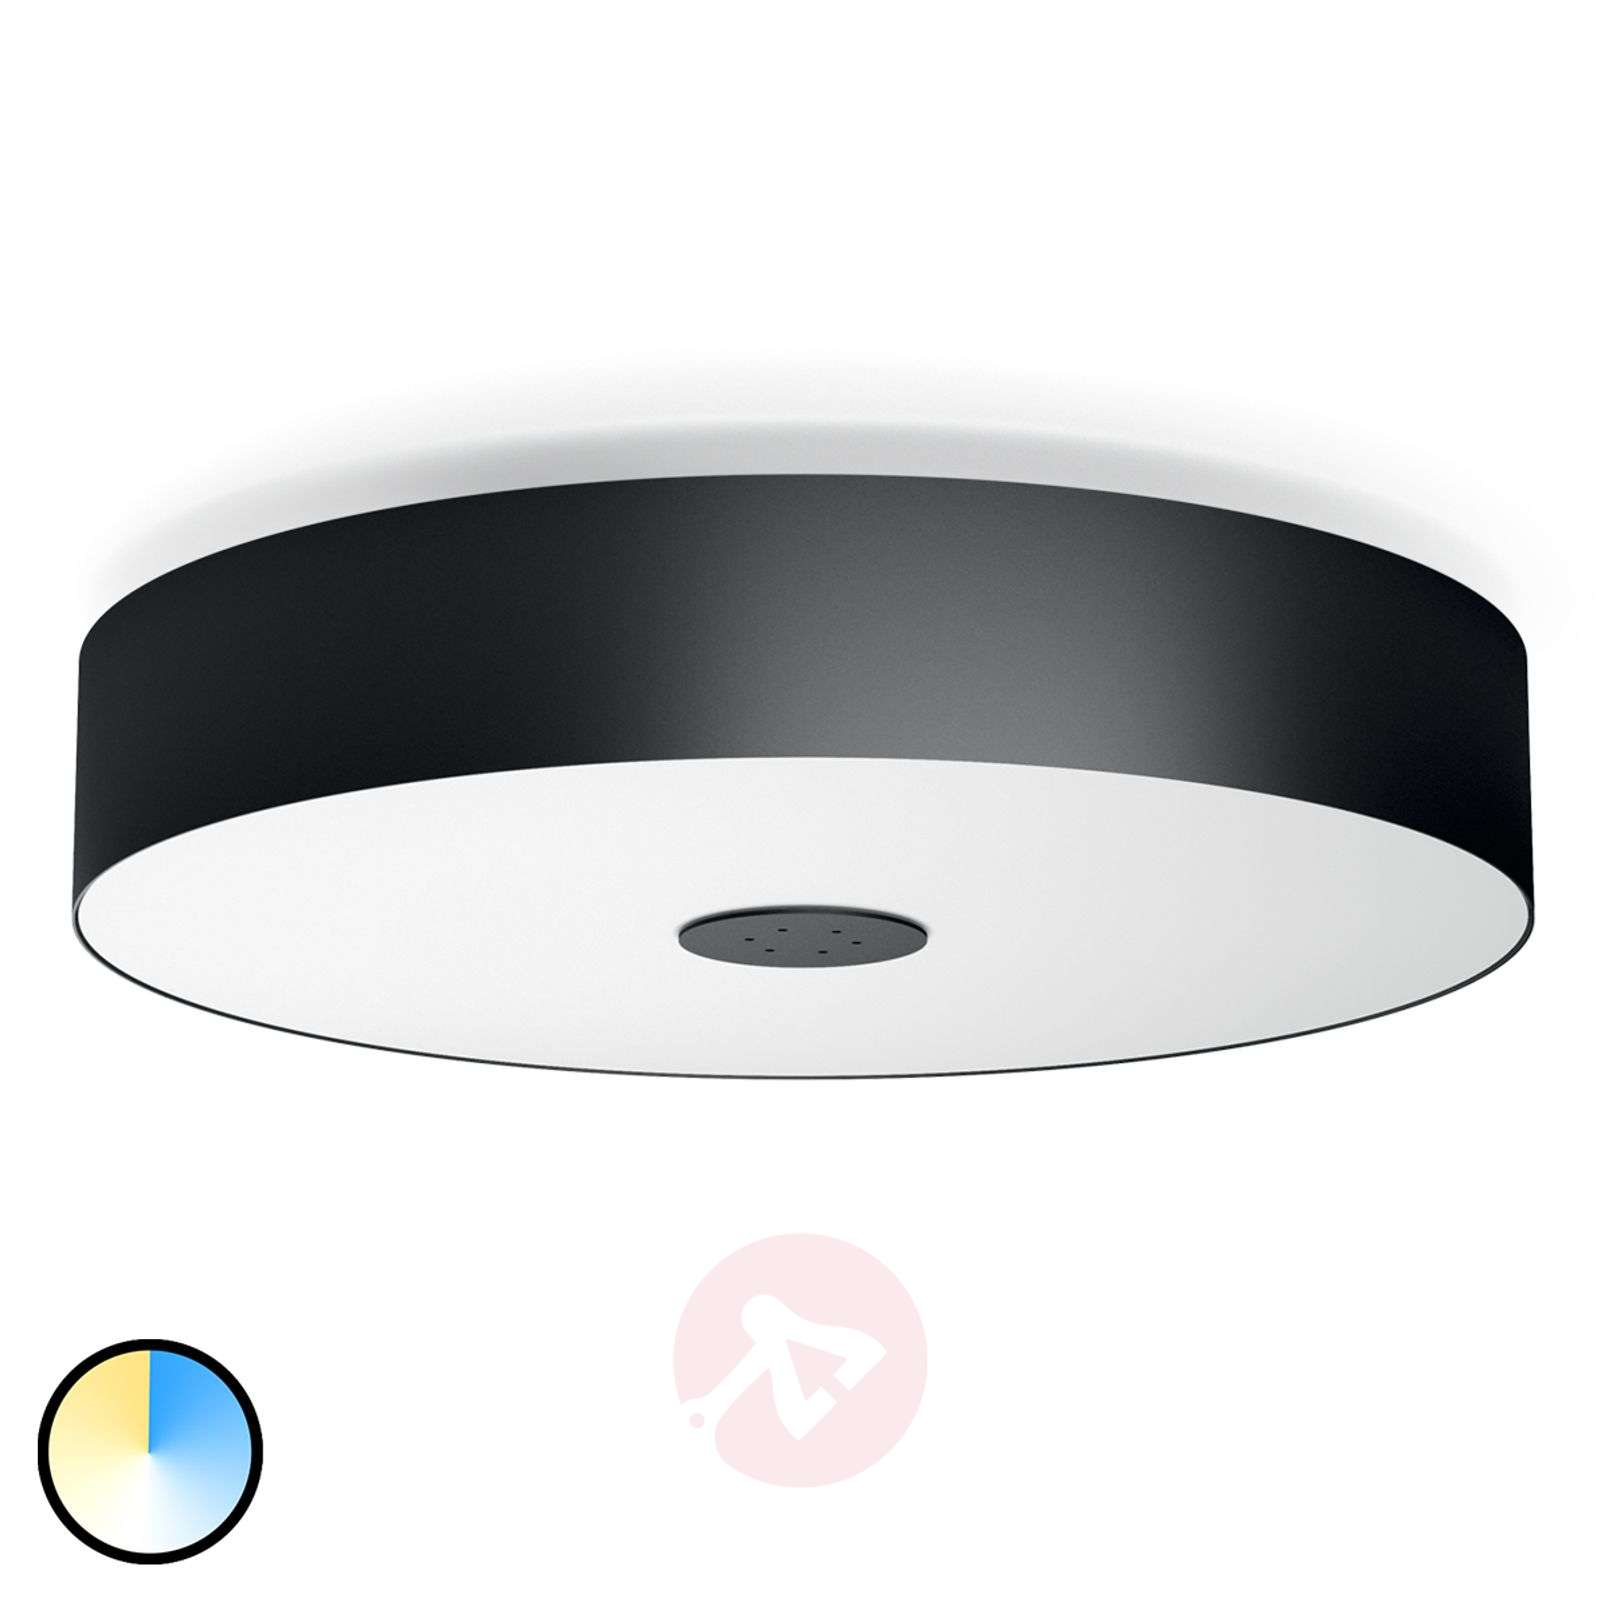 Remote control philips hue led ceiling light fair lights remote control philips hue led ceiling light fair 7531870 01 mozeypictures Images